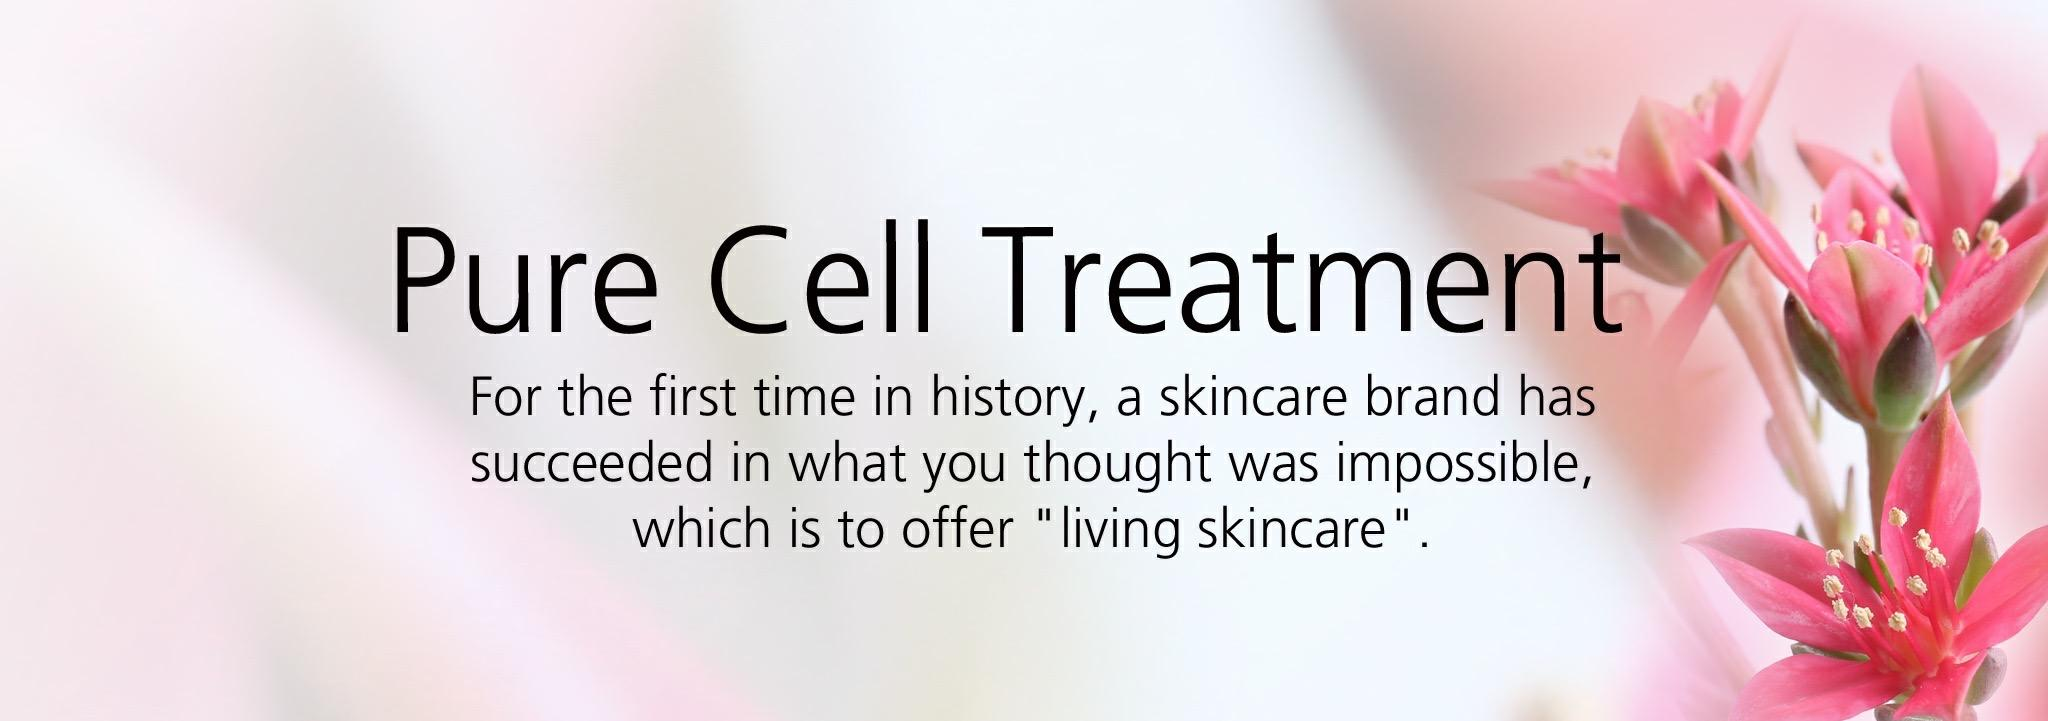 Pure cell treatment